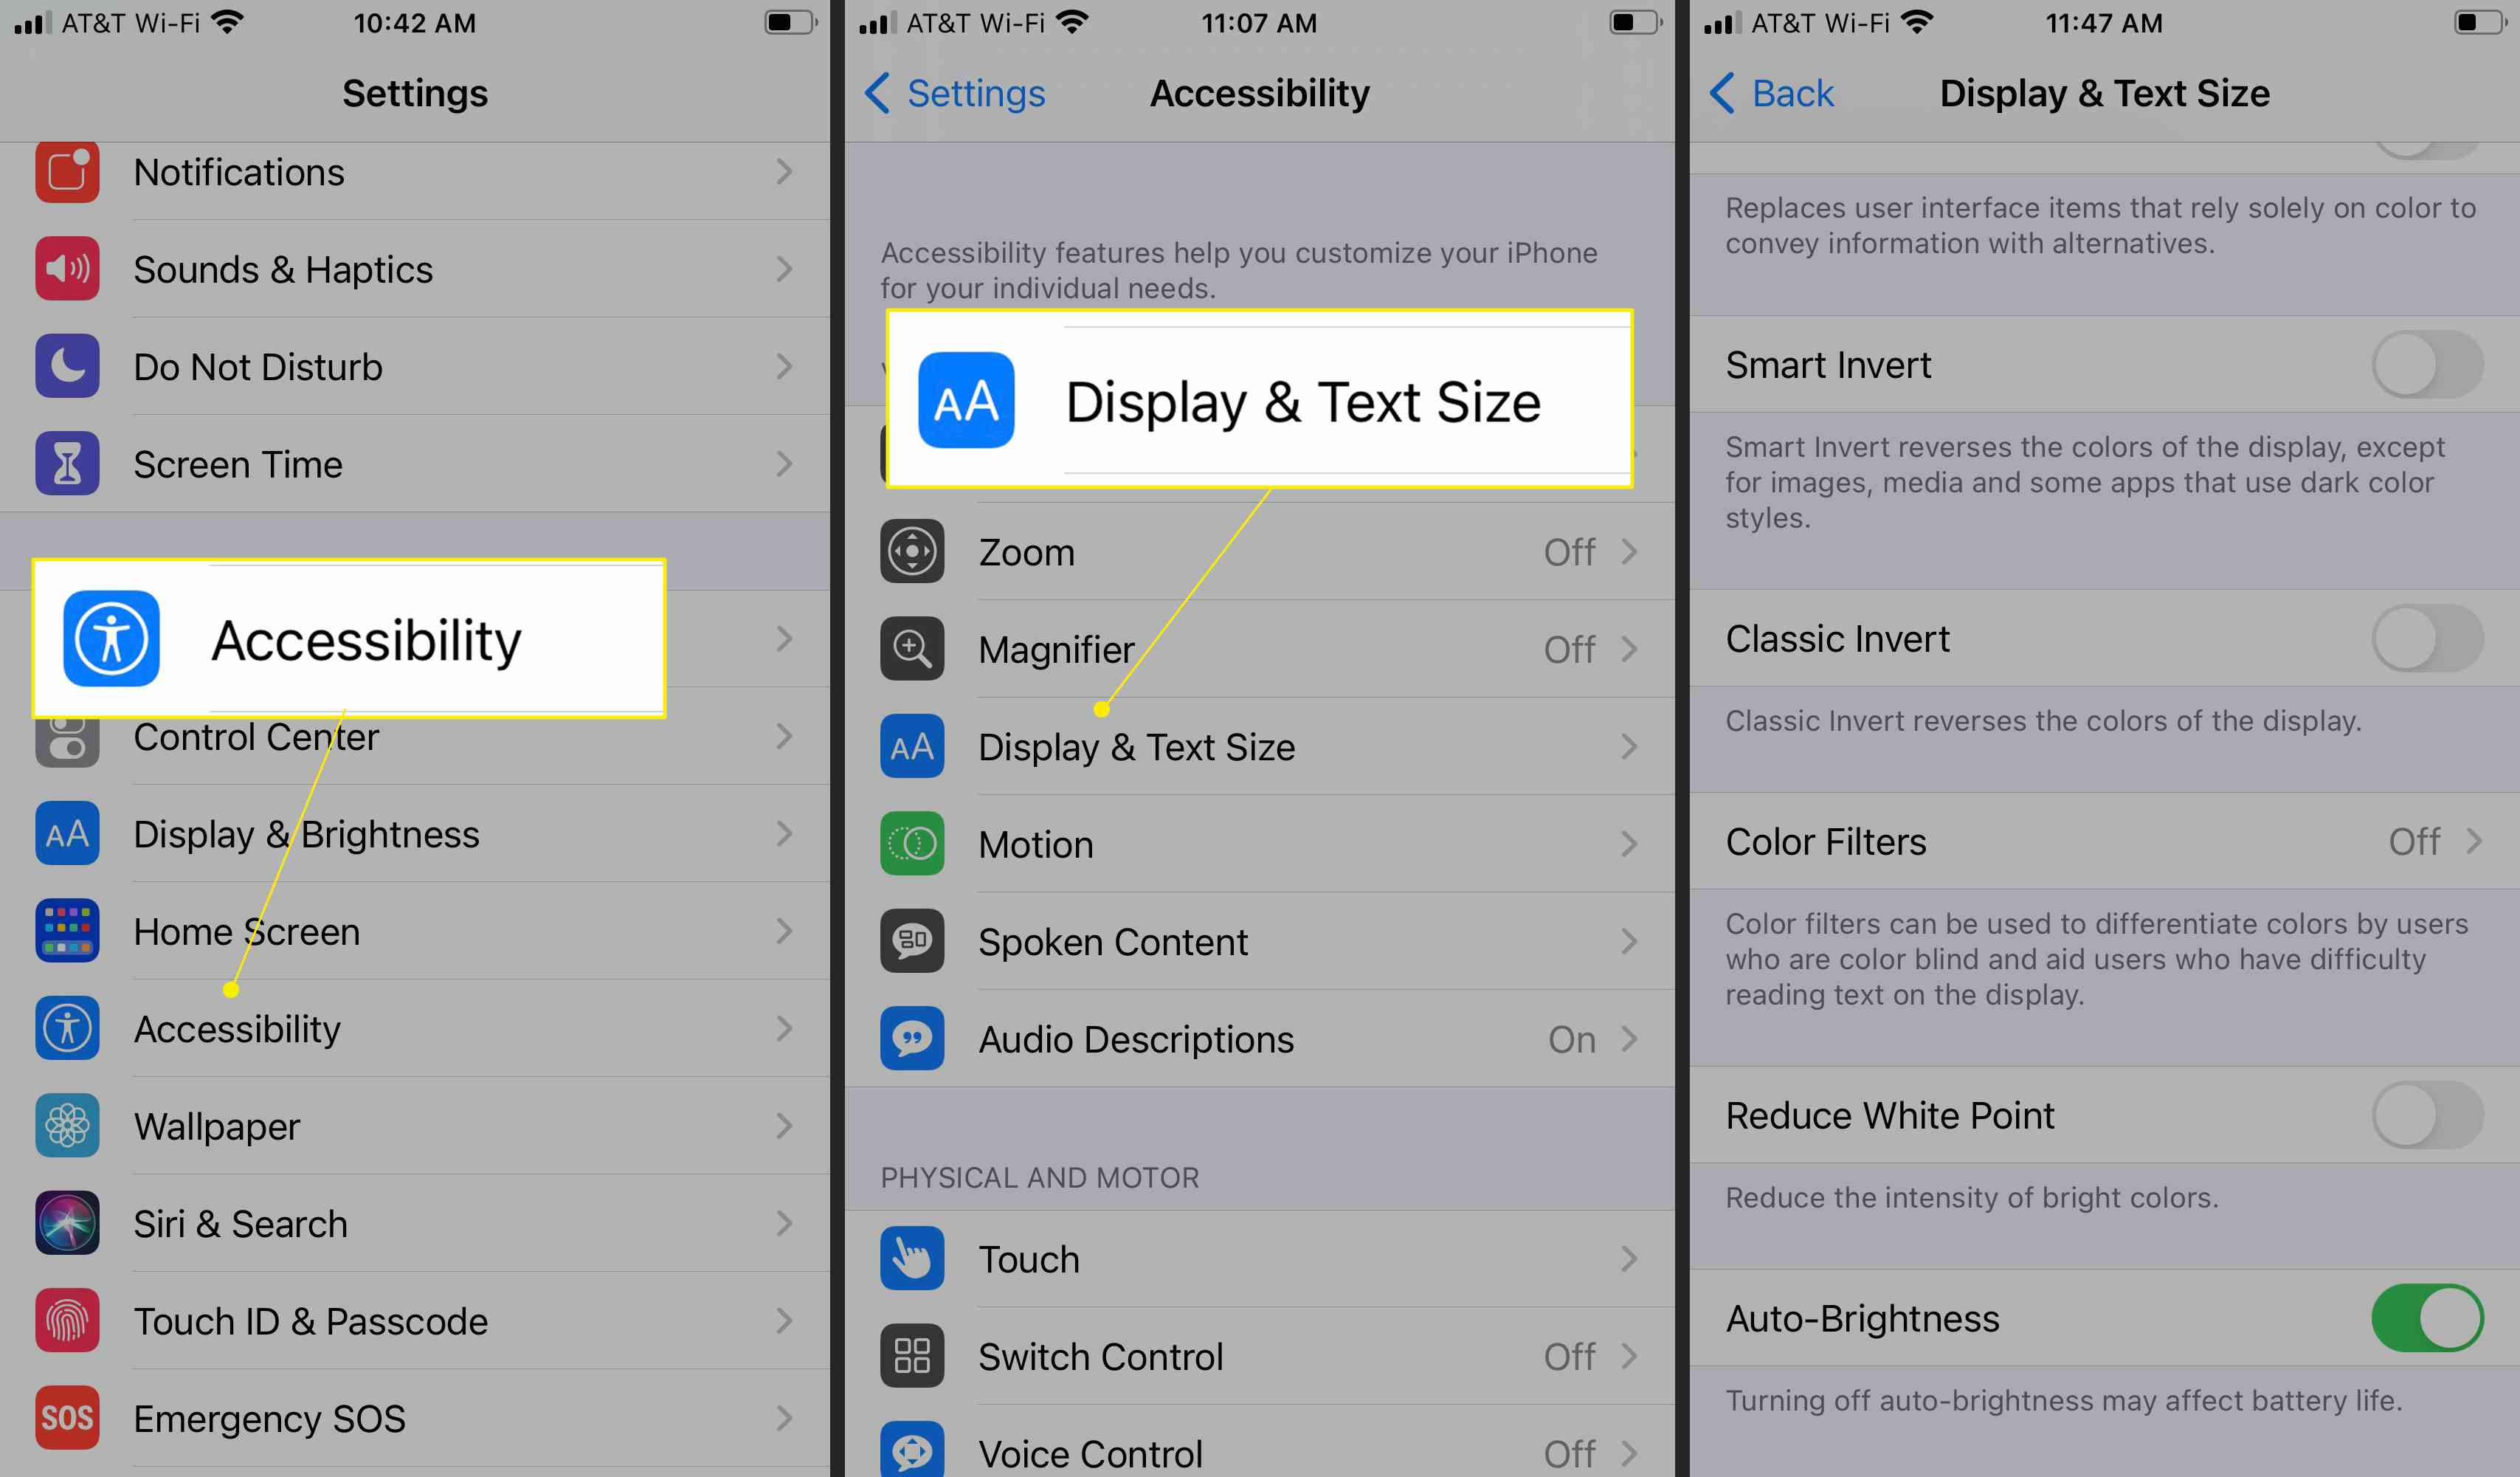 Accessibility options with Display & Text size settings highlighted